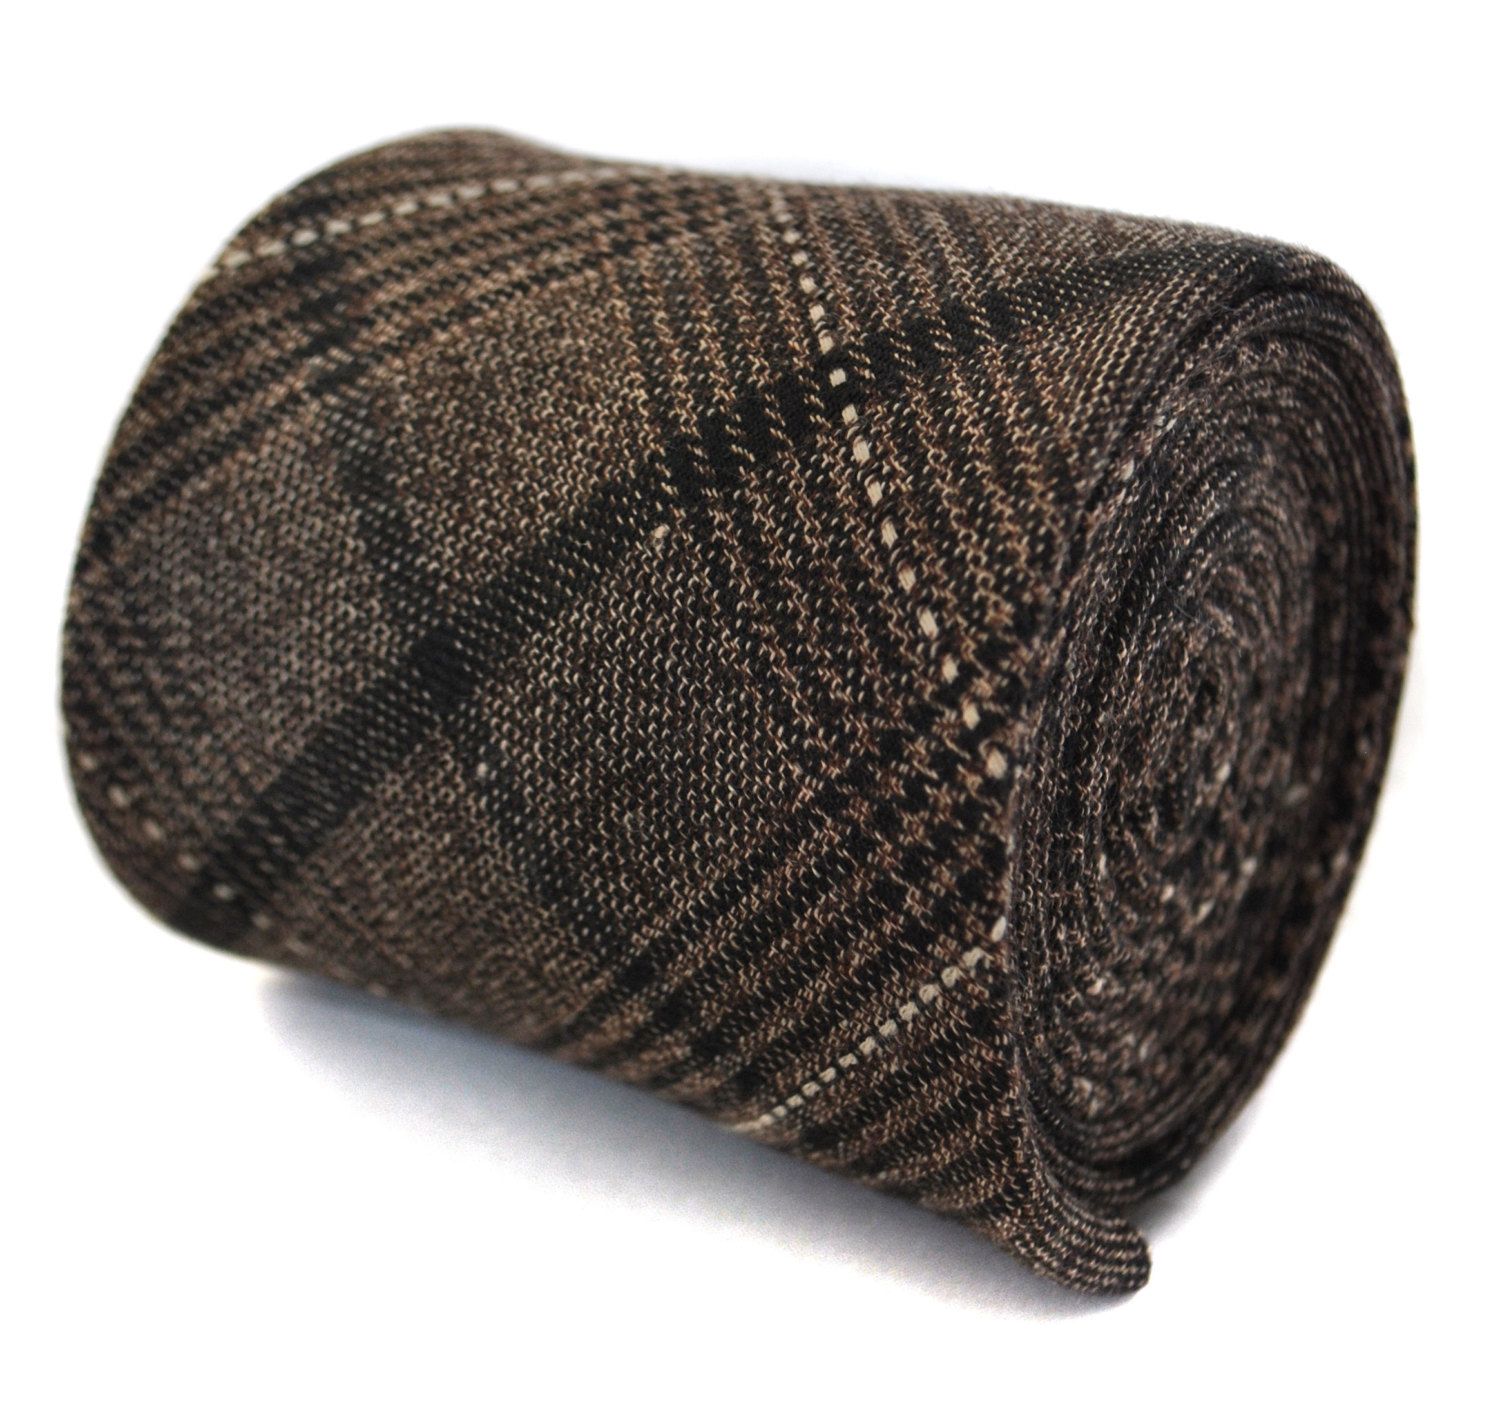 chestnut brown checked tweed wool tie by Frederick Thomas FT2044